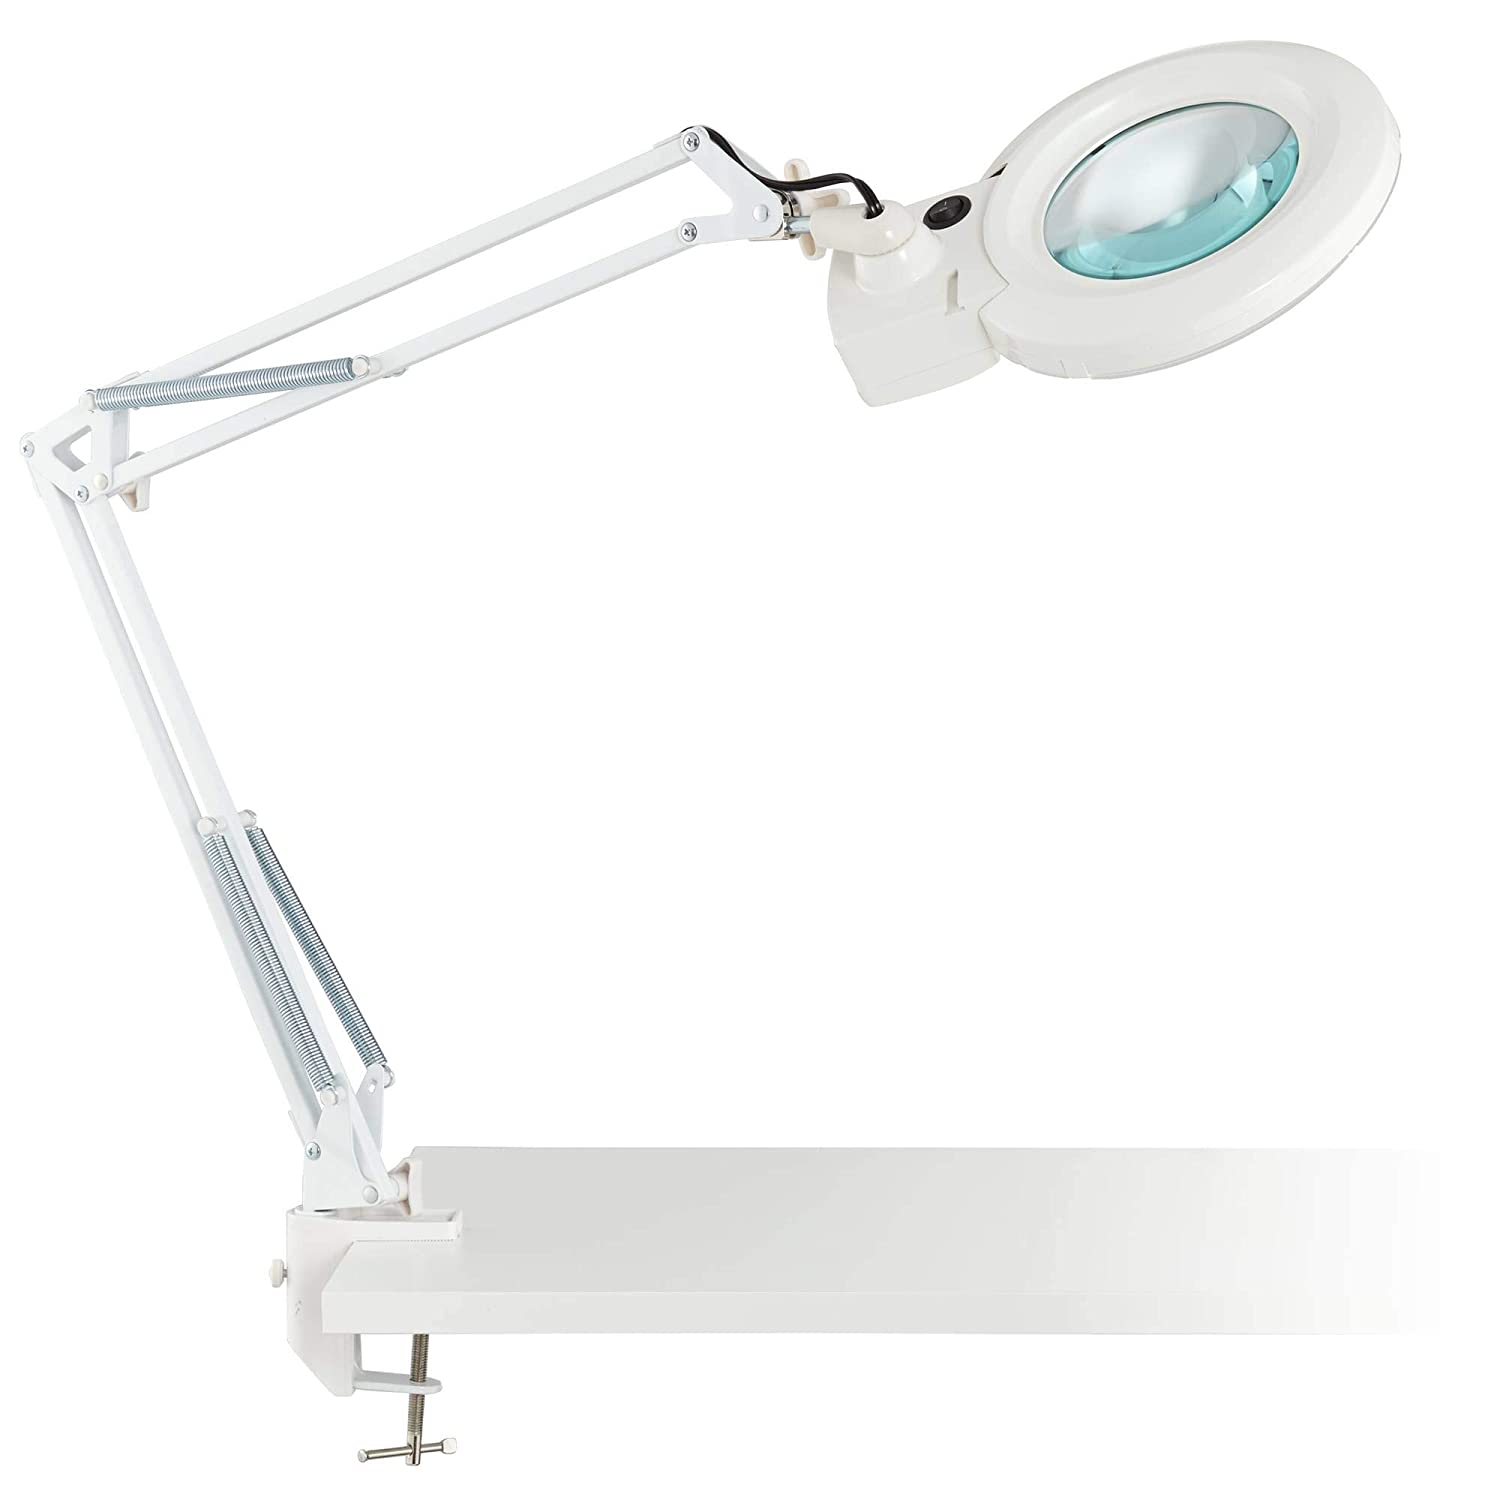 Lamp 3x5x Clancy Magnifier White Architect Led Desk wk08nPOX